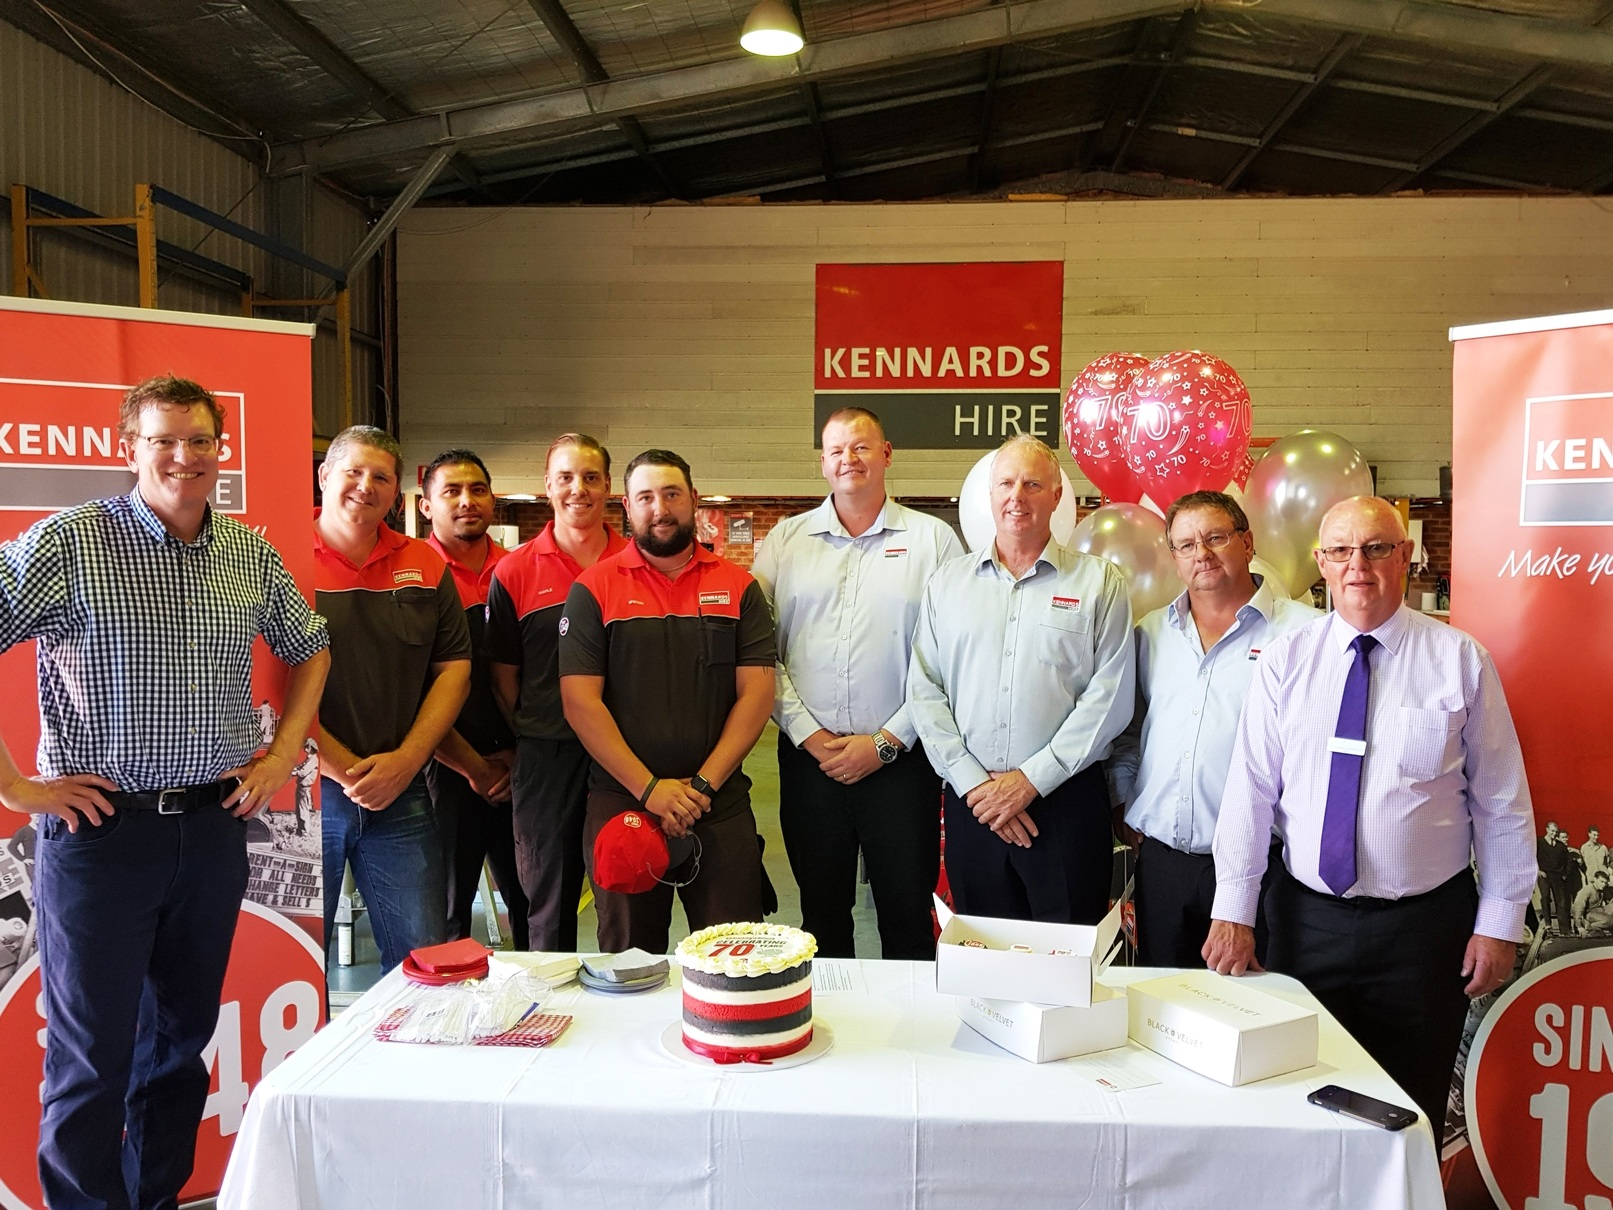 Kennards Hire celebrates its 70th anniversary